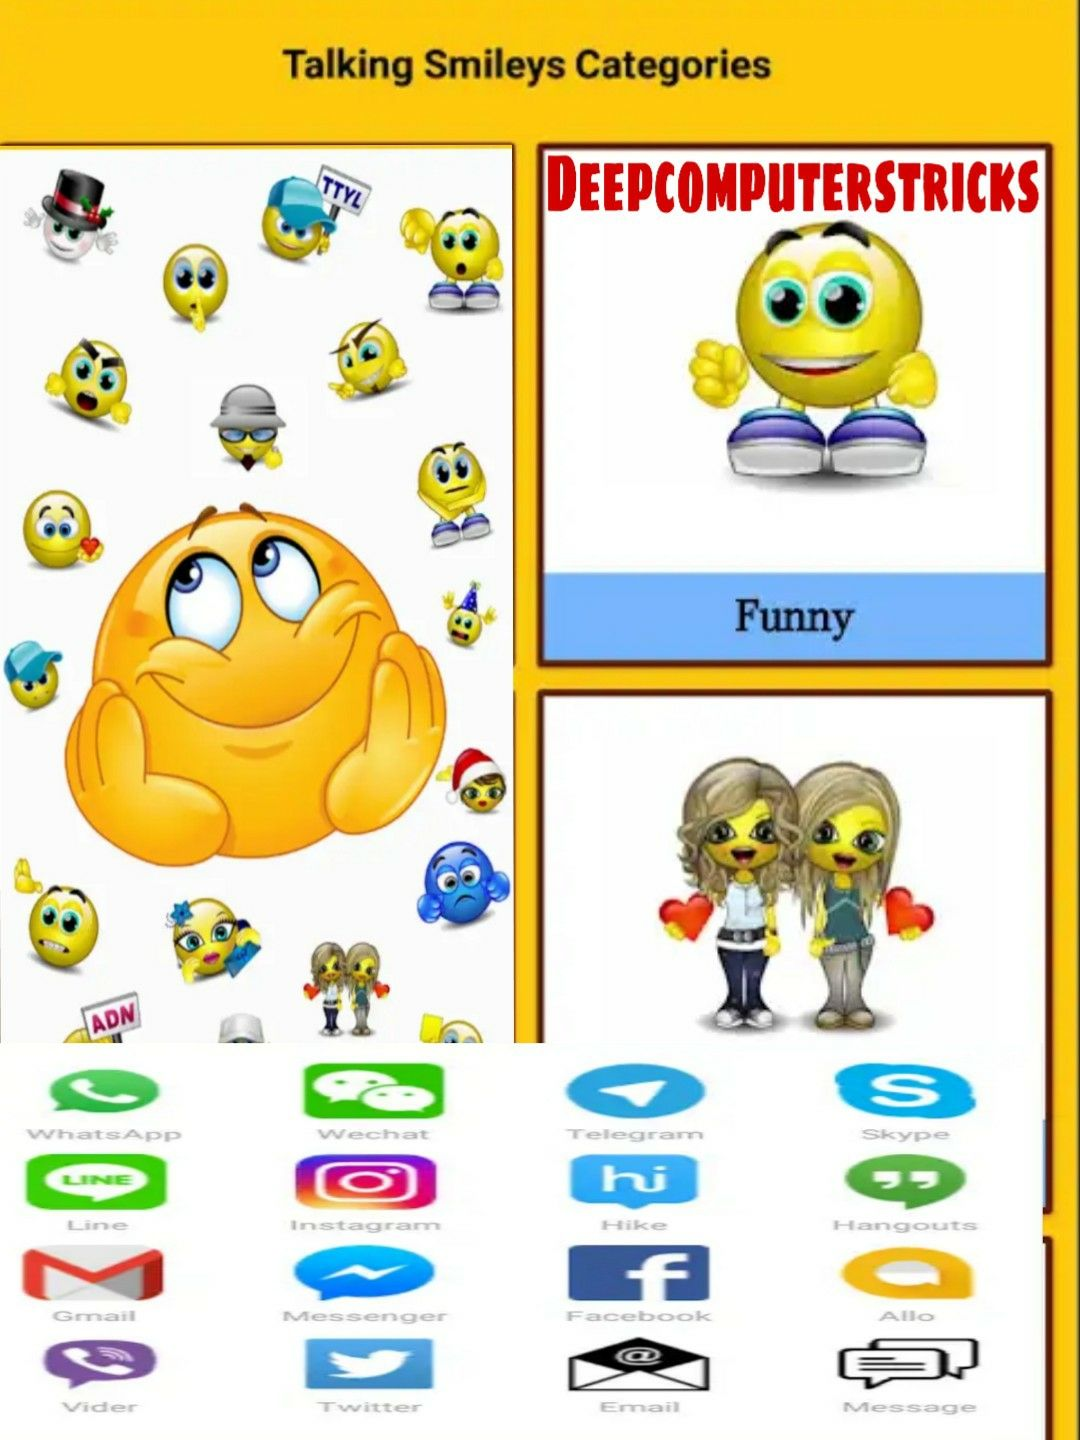 Smiley Face Emoji Sound Animated Faceemoji Stickers For Whatsapp Chat In 2020 Funny Emoticons Animated Emojis Smiley